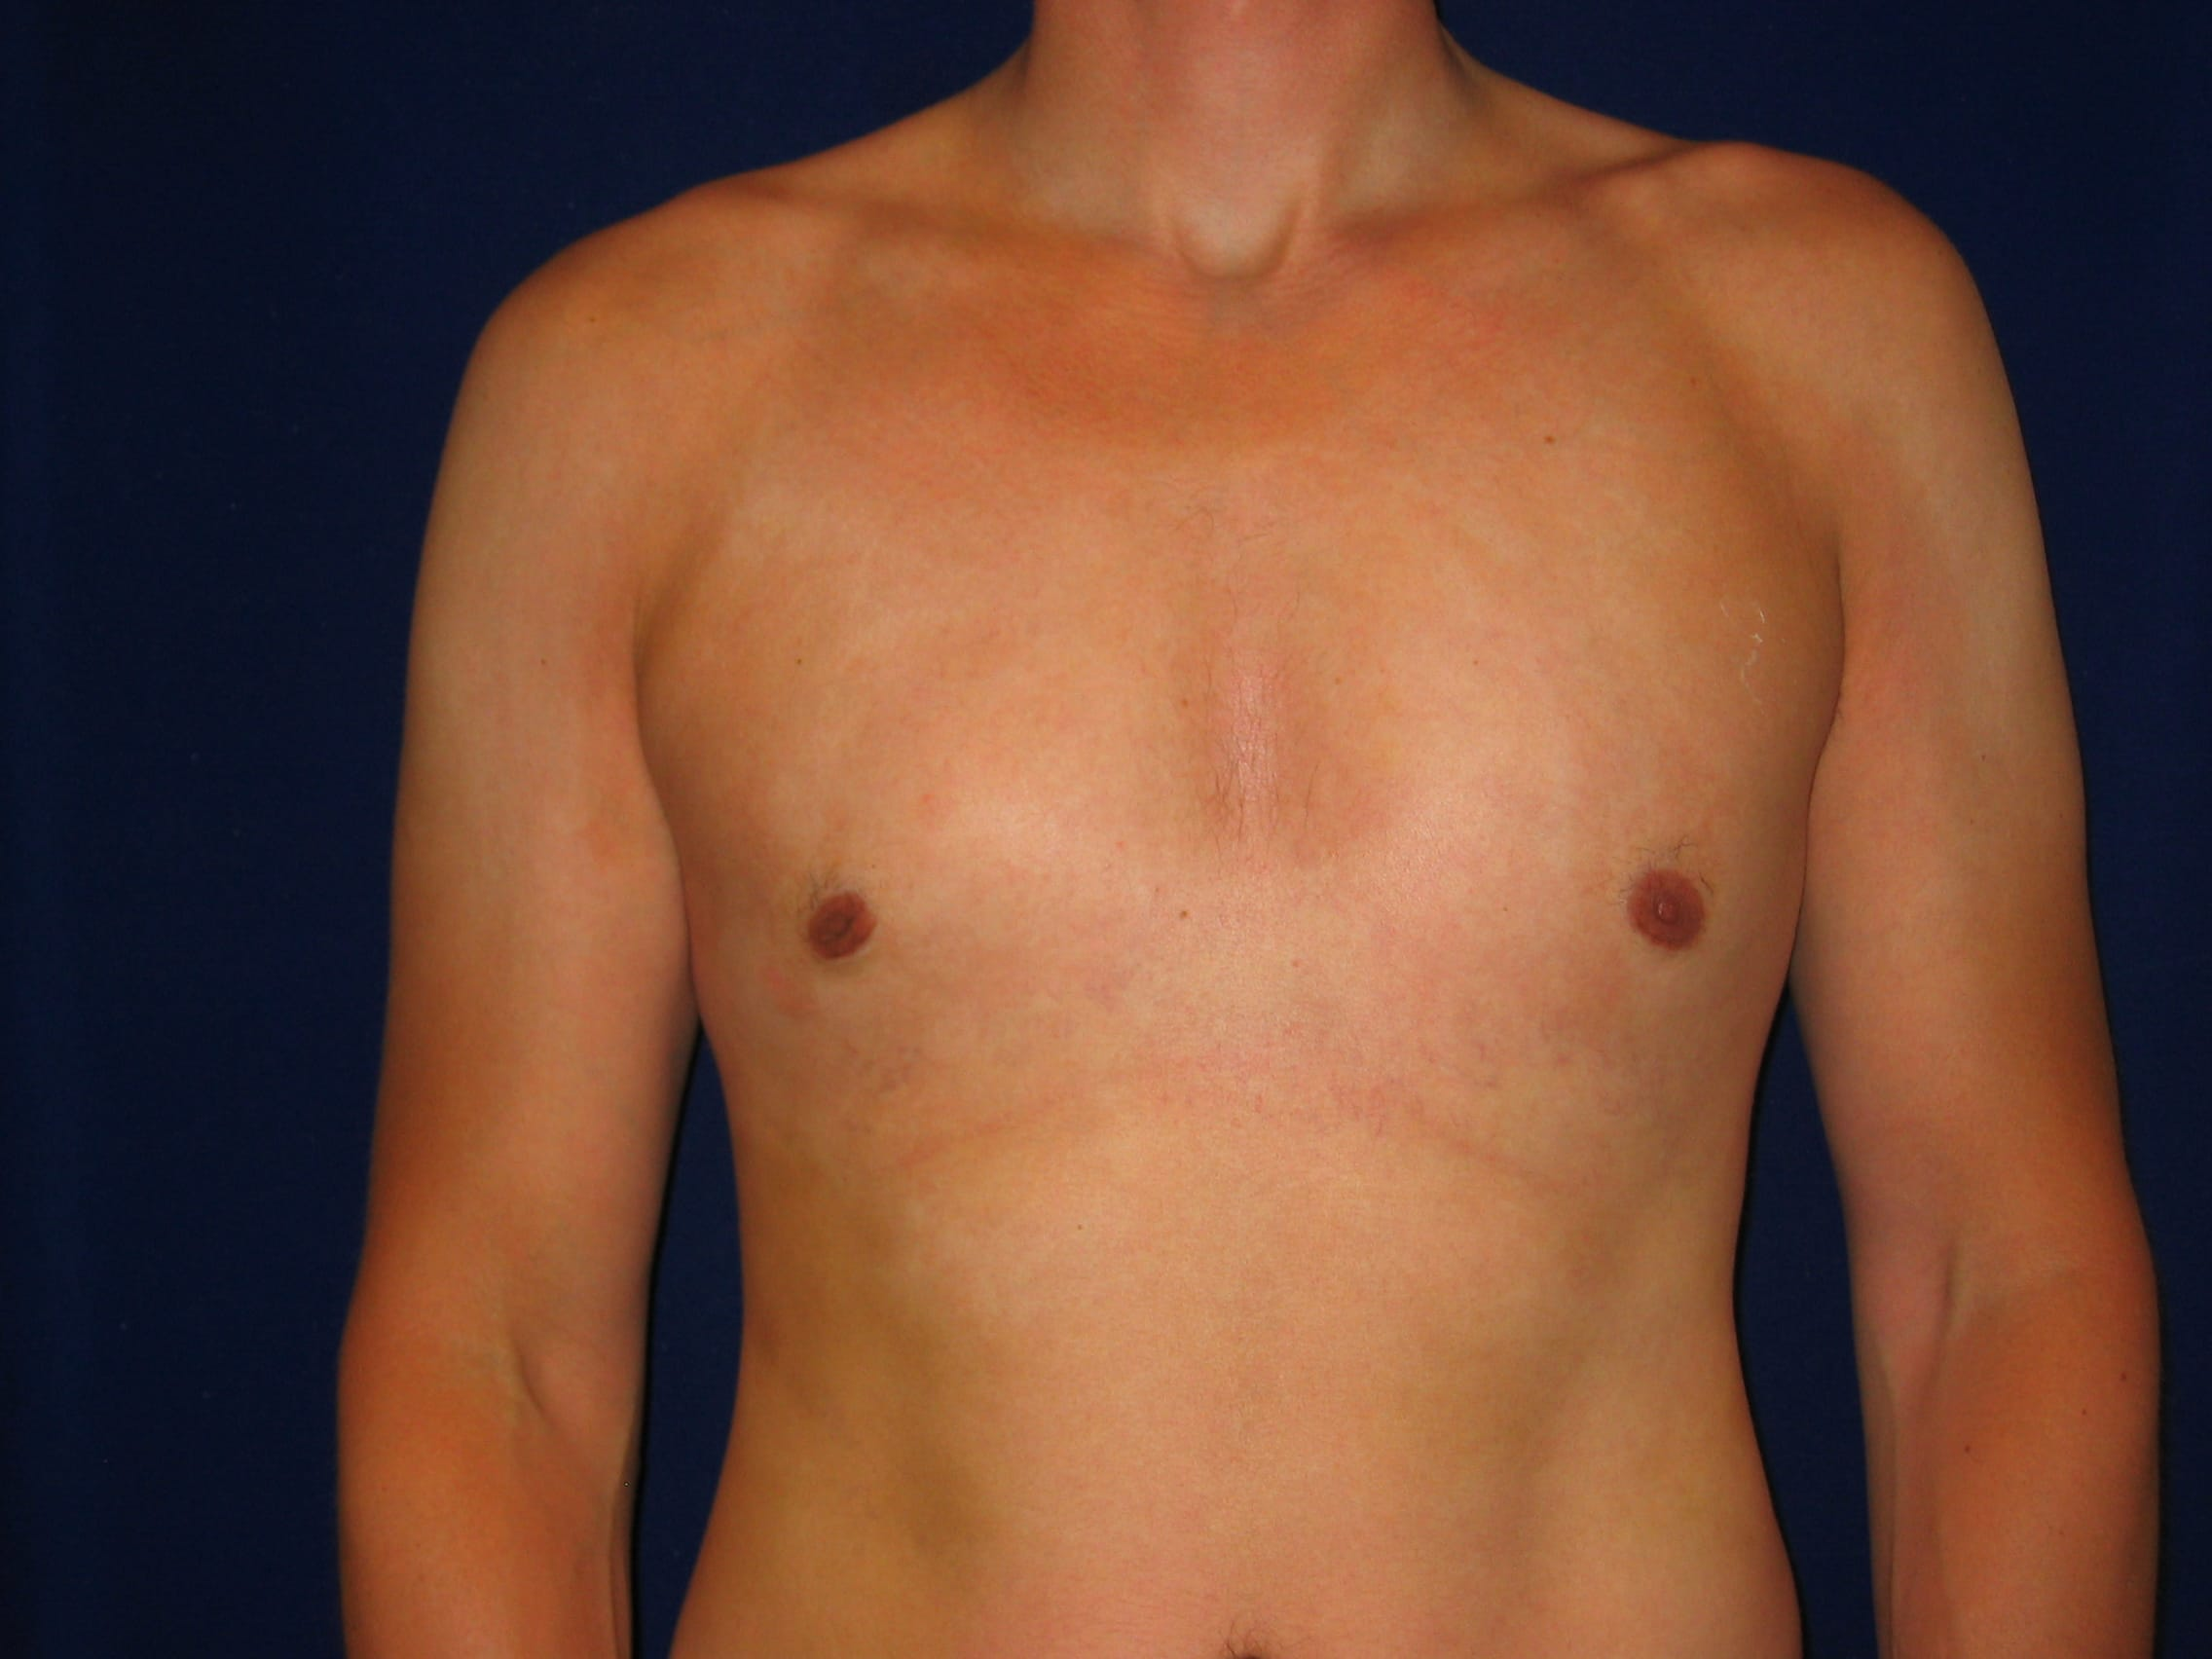 Male Cosmetic Procedures, LV Plastic Surgery Center